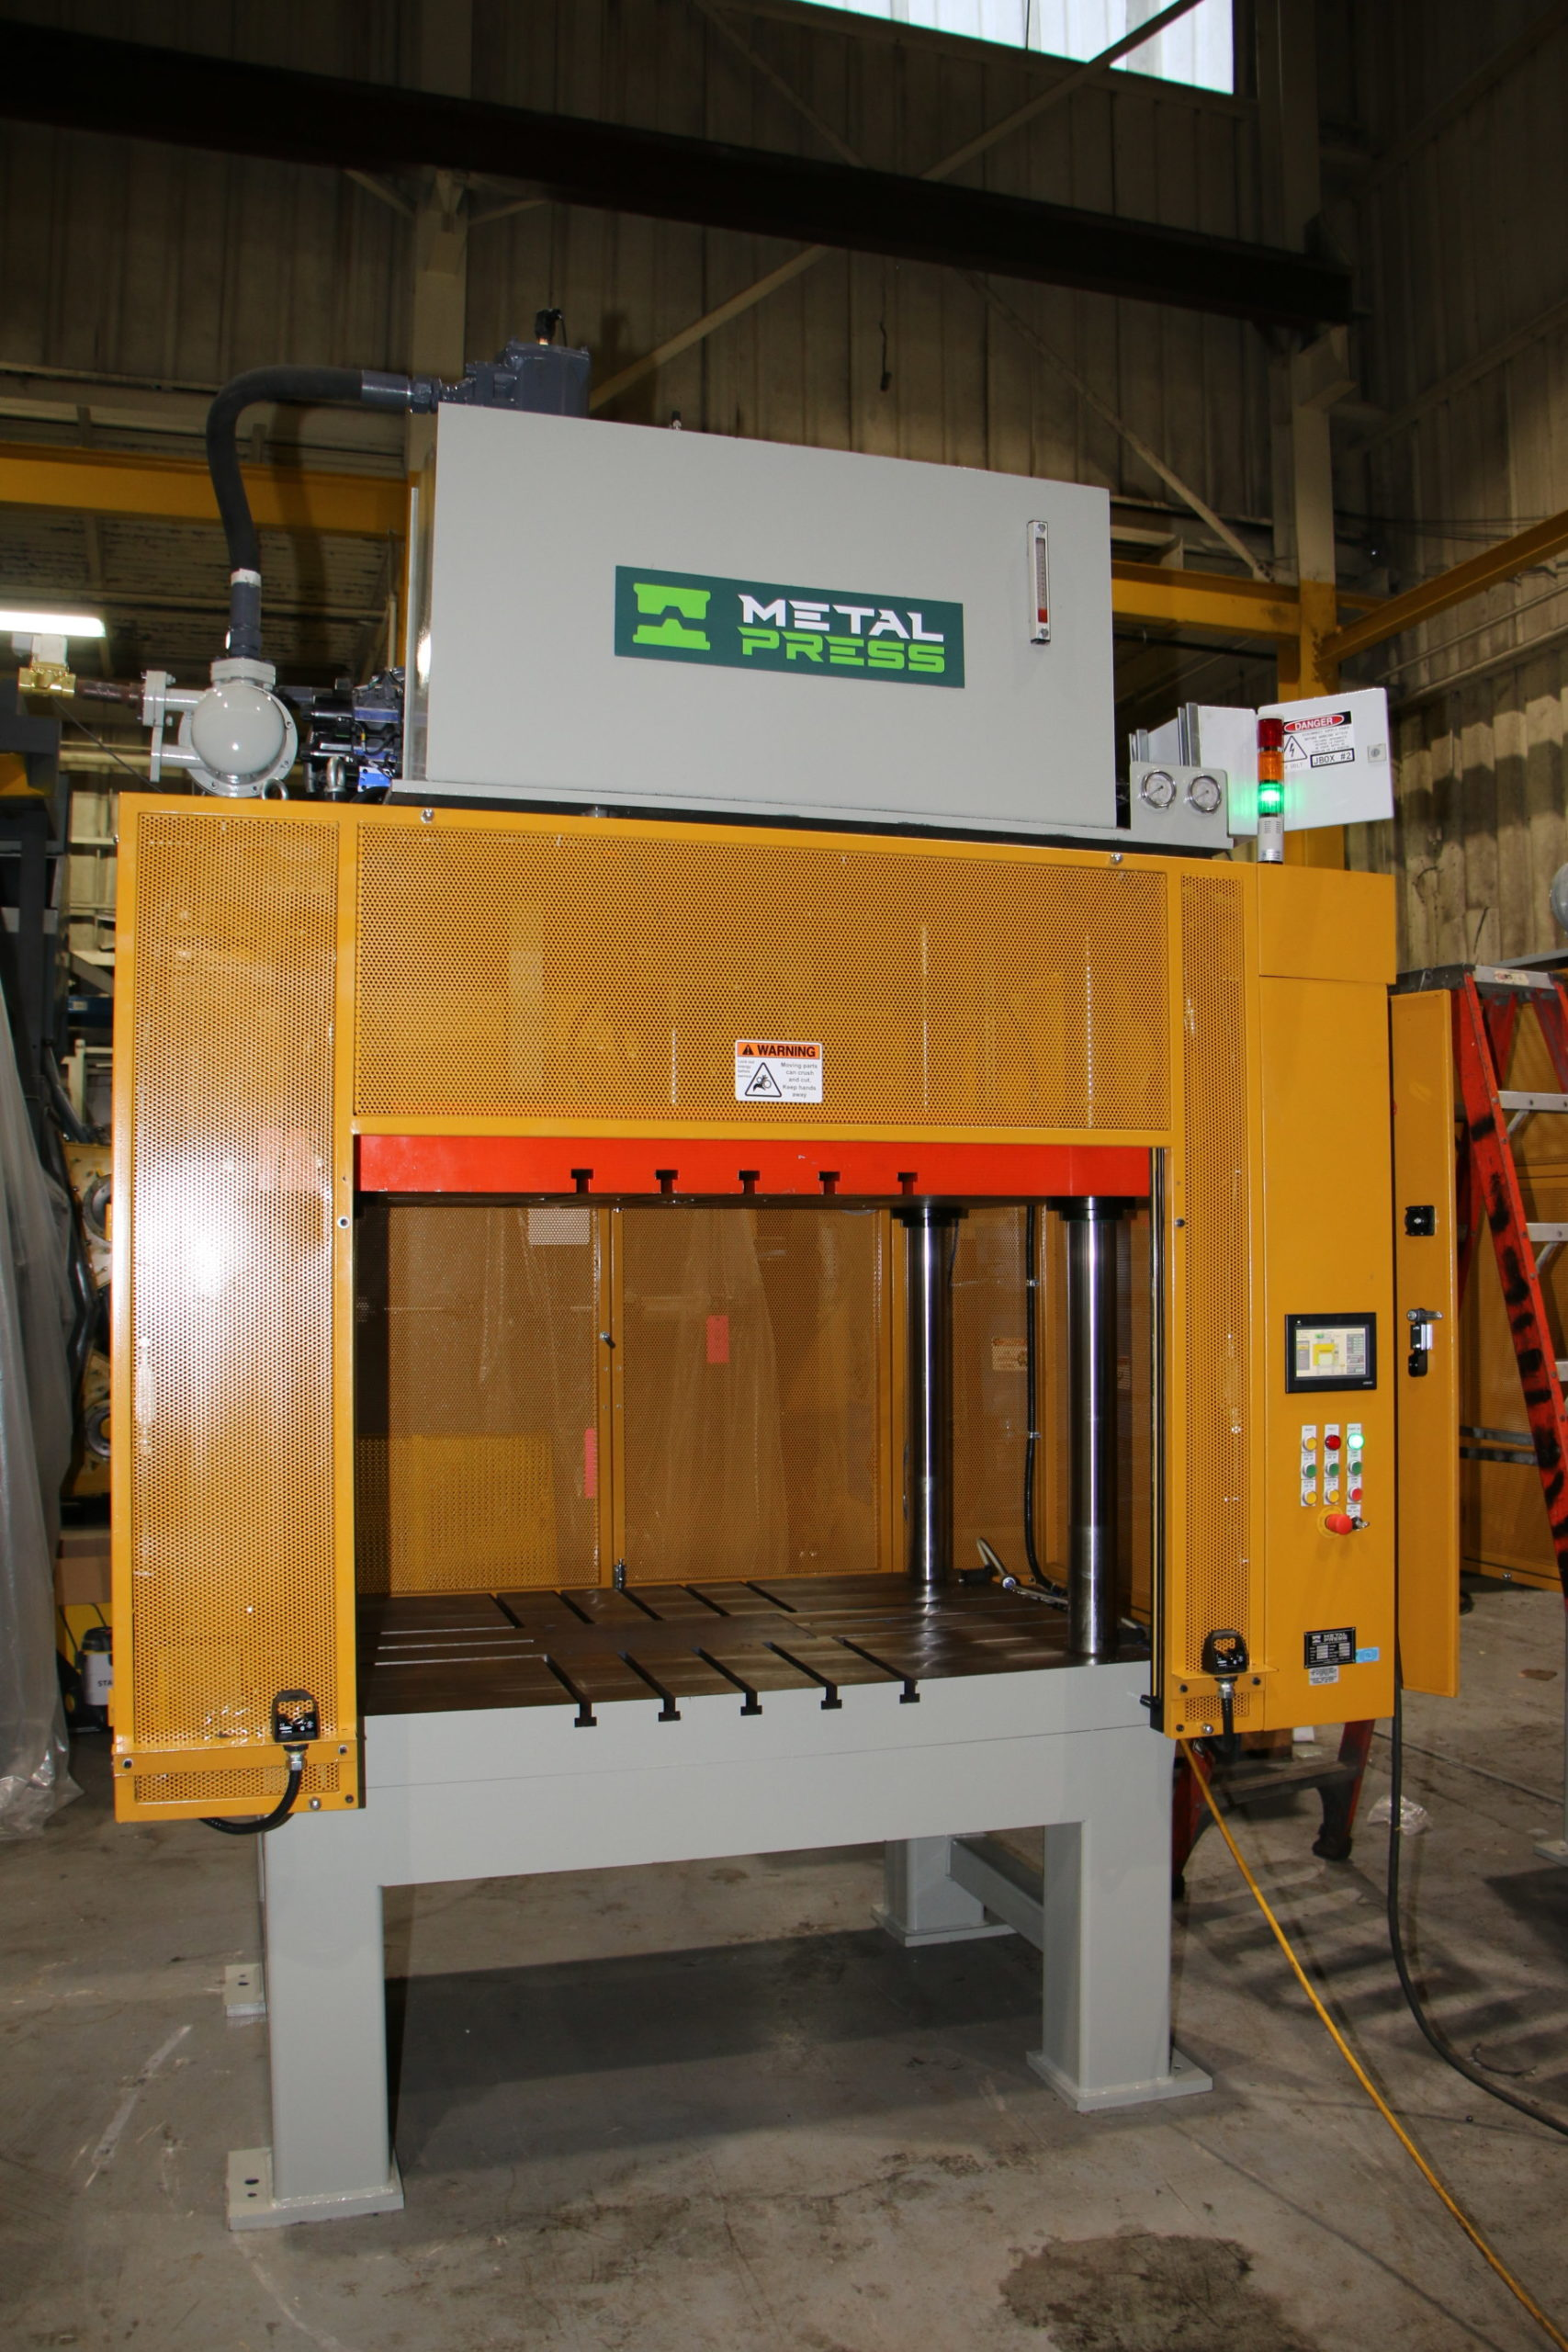 New MetalPress 50Ton Trim Press Die Casting #4734